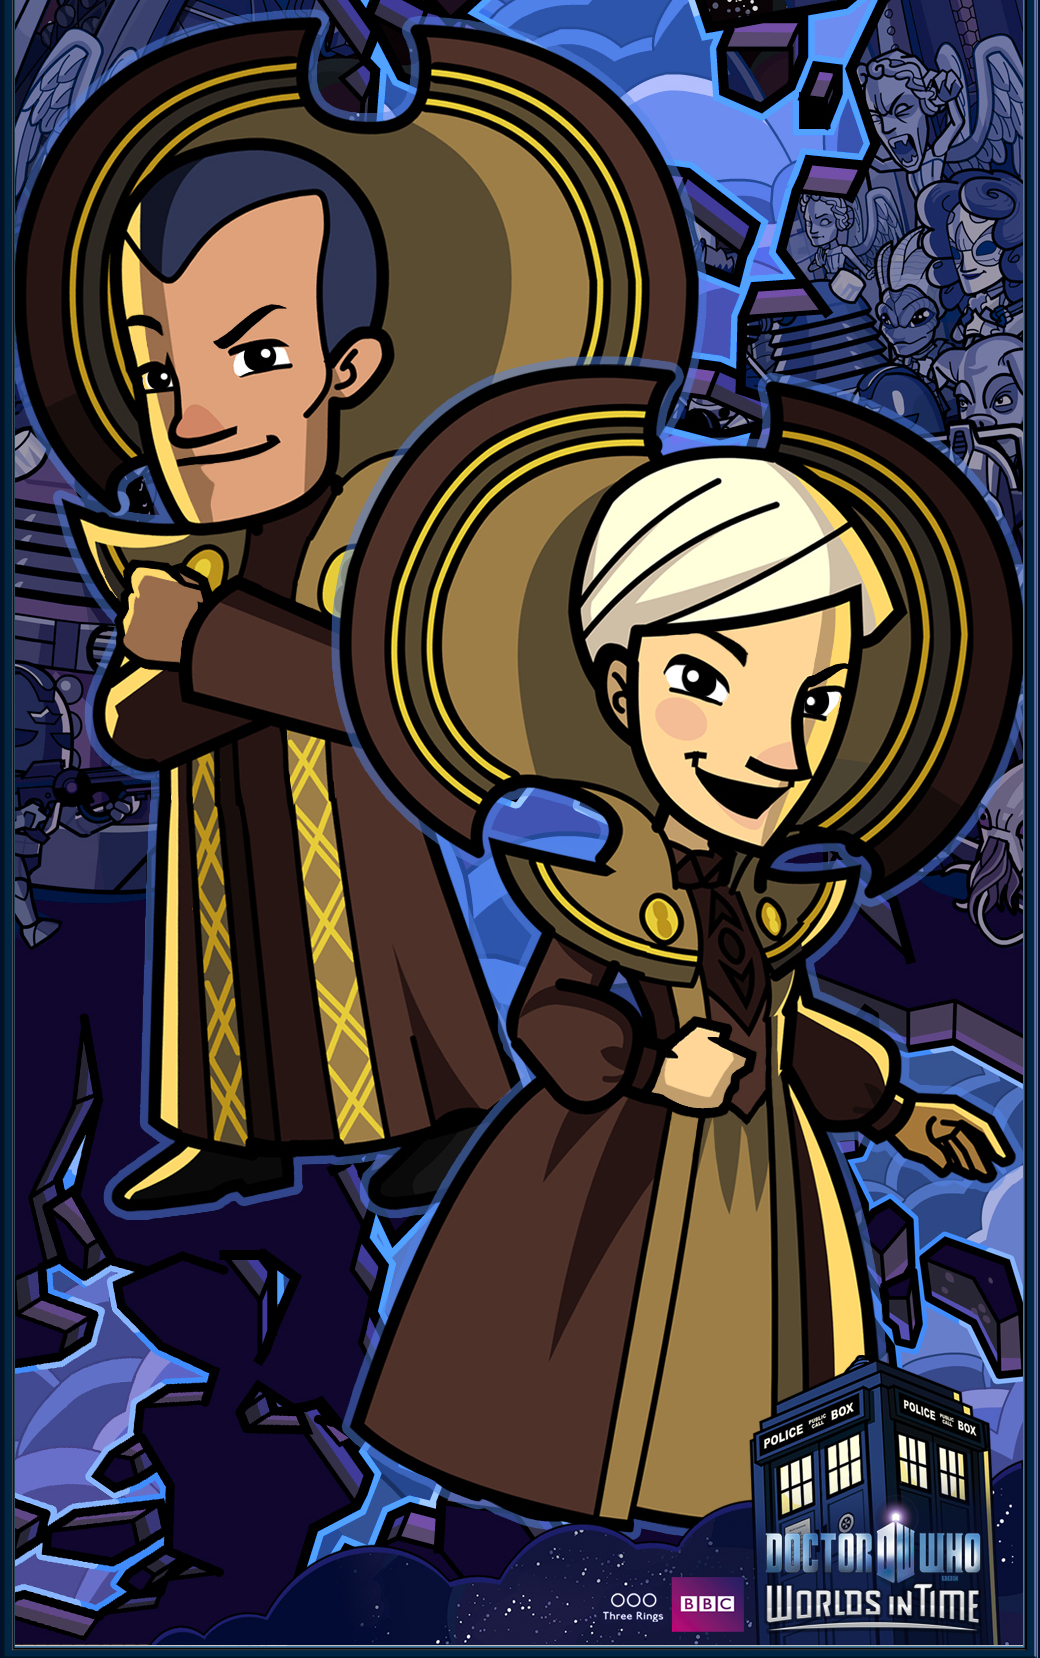 Dr. Who: Worlds in Time